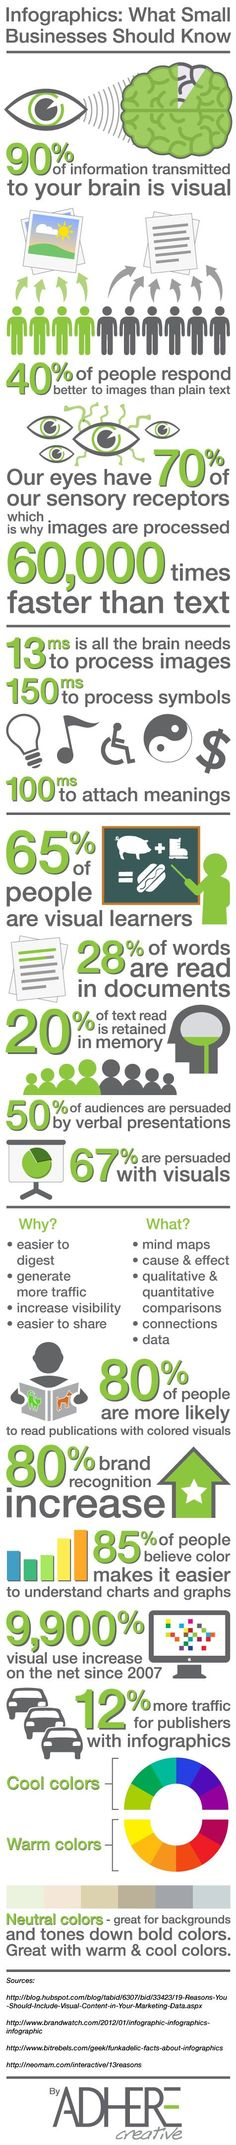 Infographics and What Small Businesses Should Know [#Infographic]